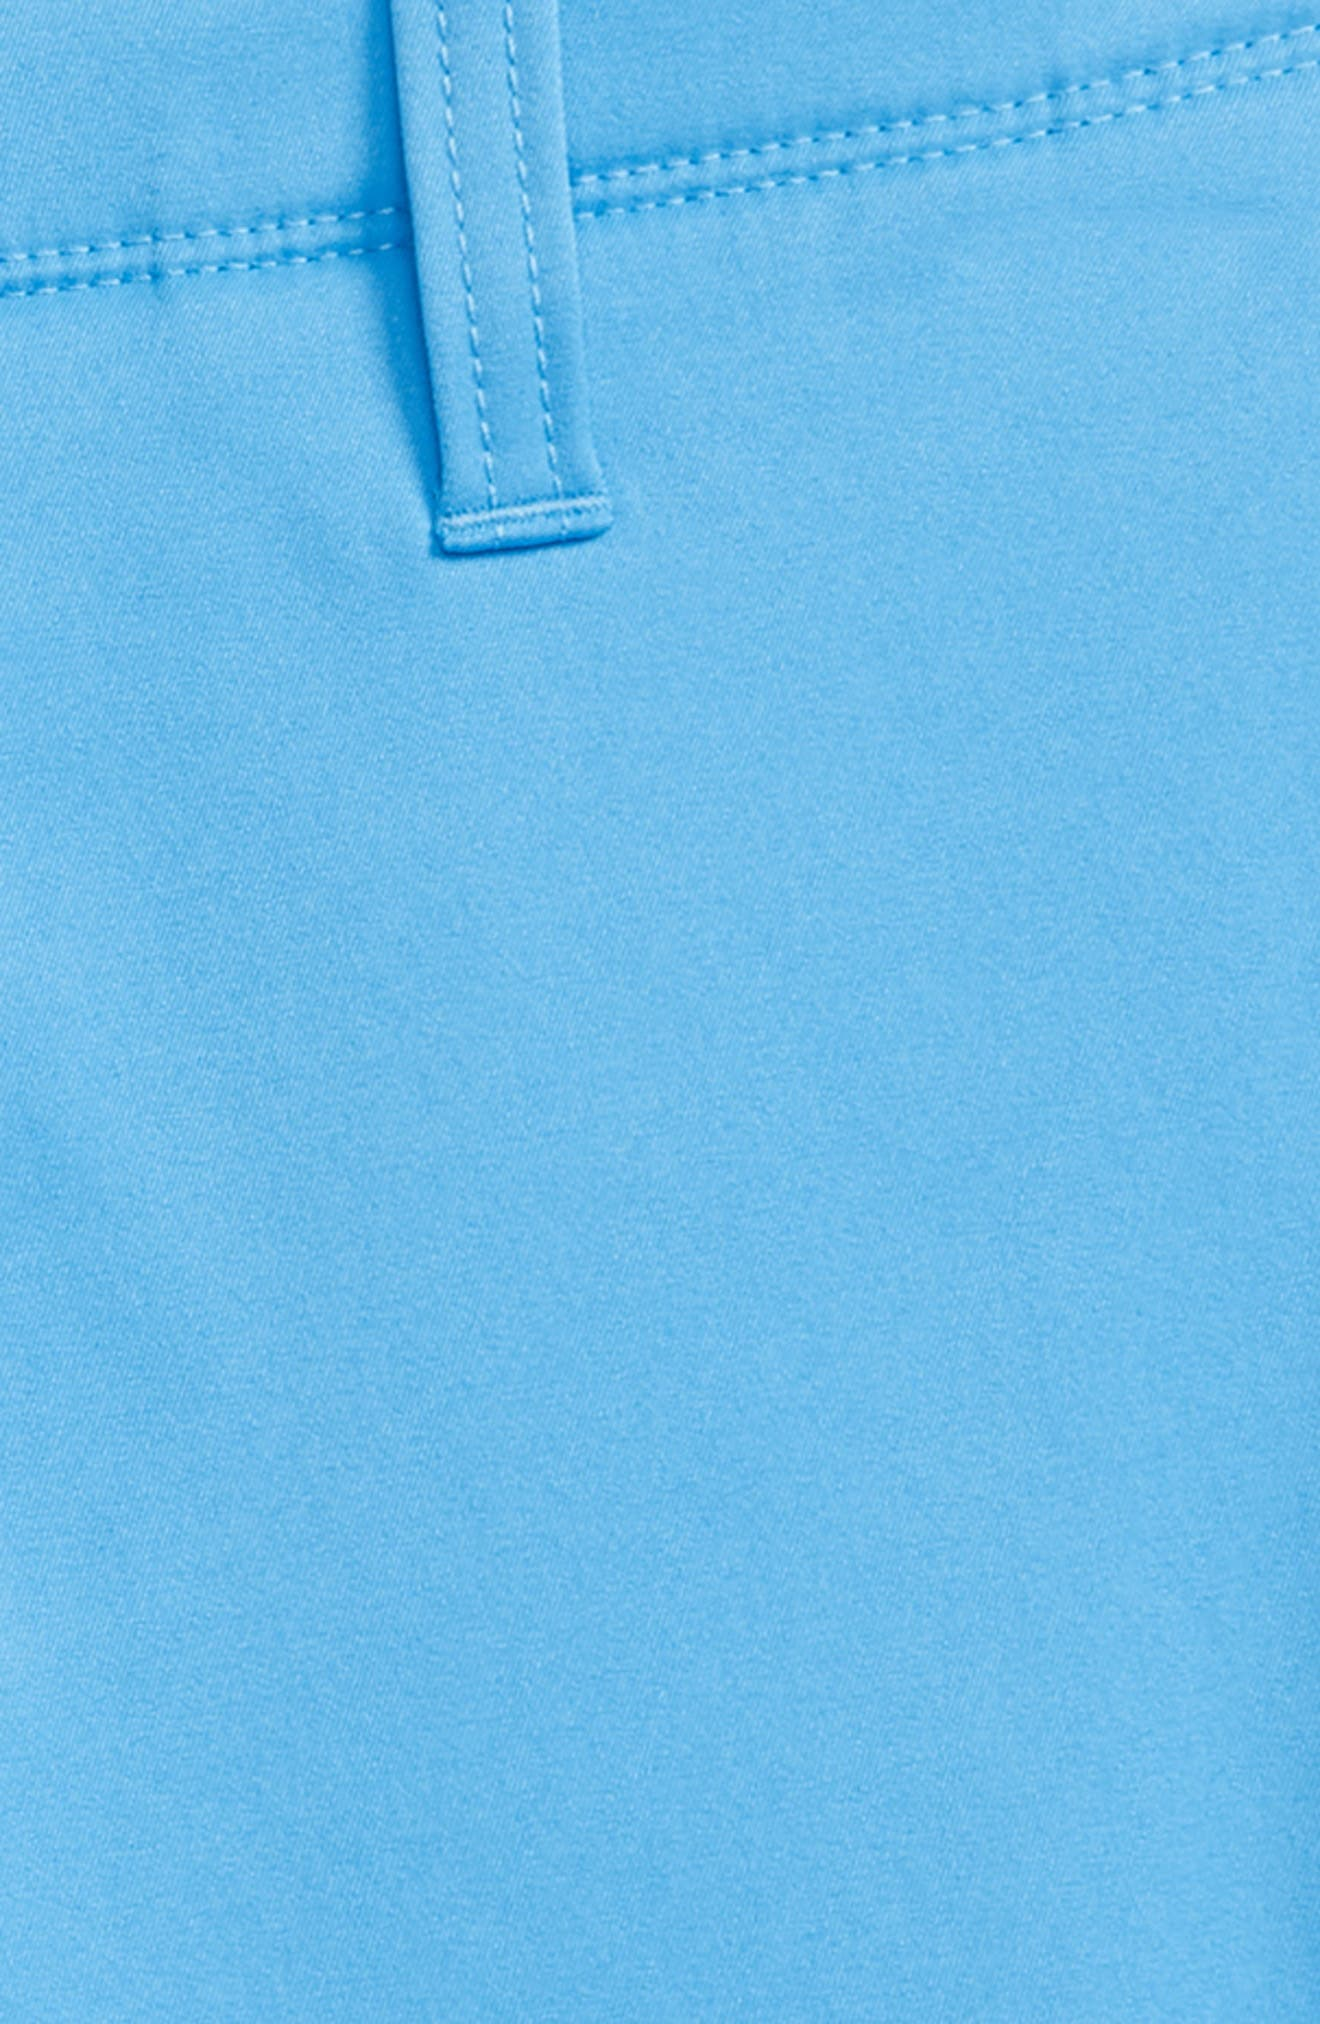 Match Play Shorts,                             Alternate thumbnail 2, color,                             Canoe Blue/ Moroccan Blue